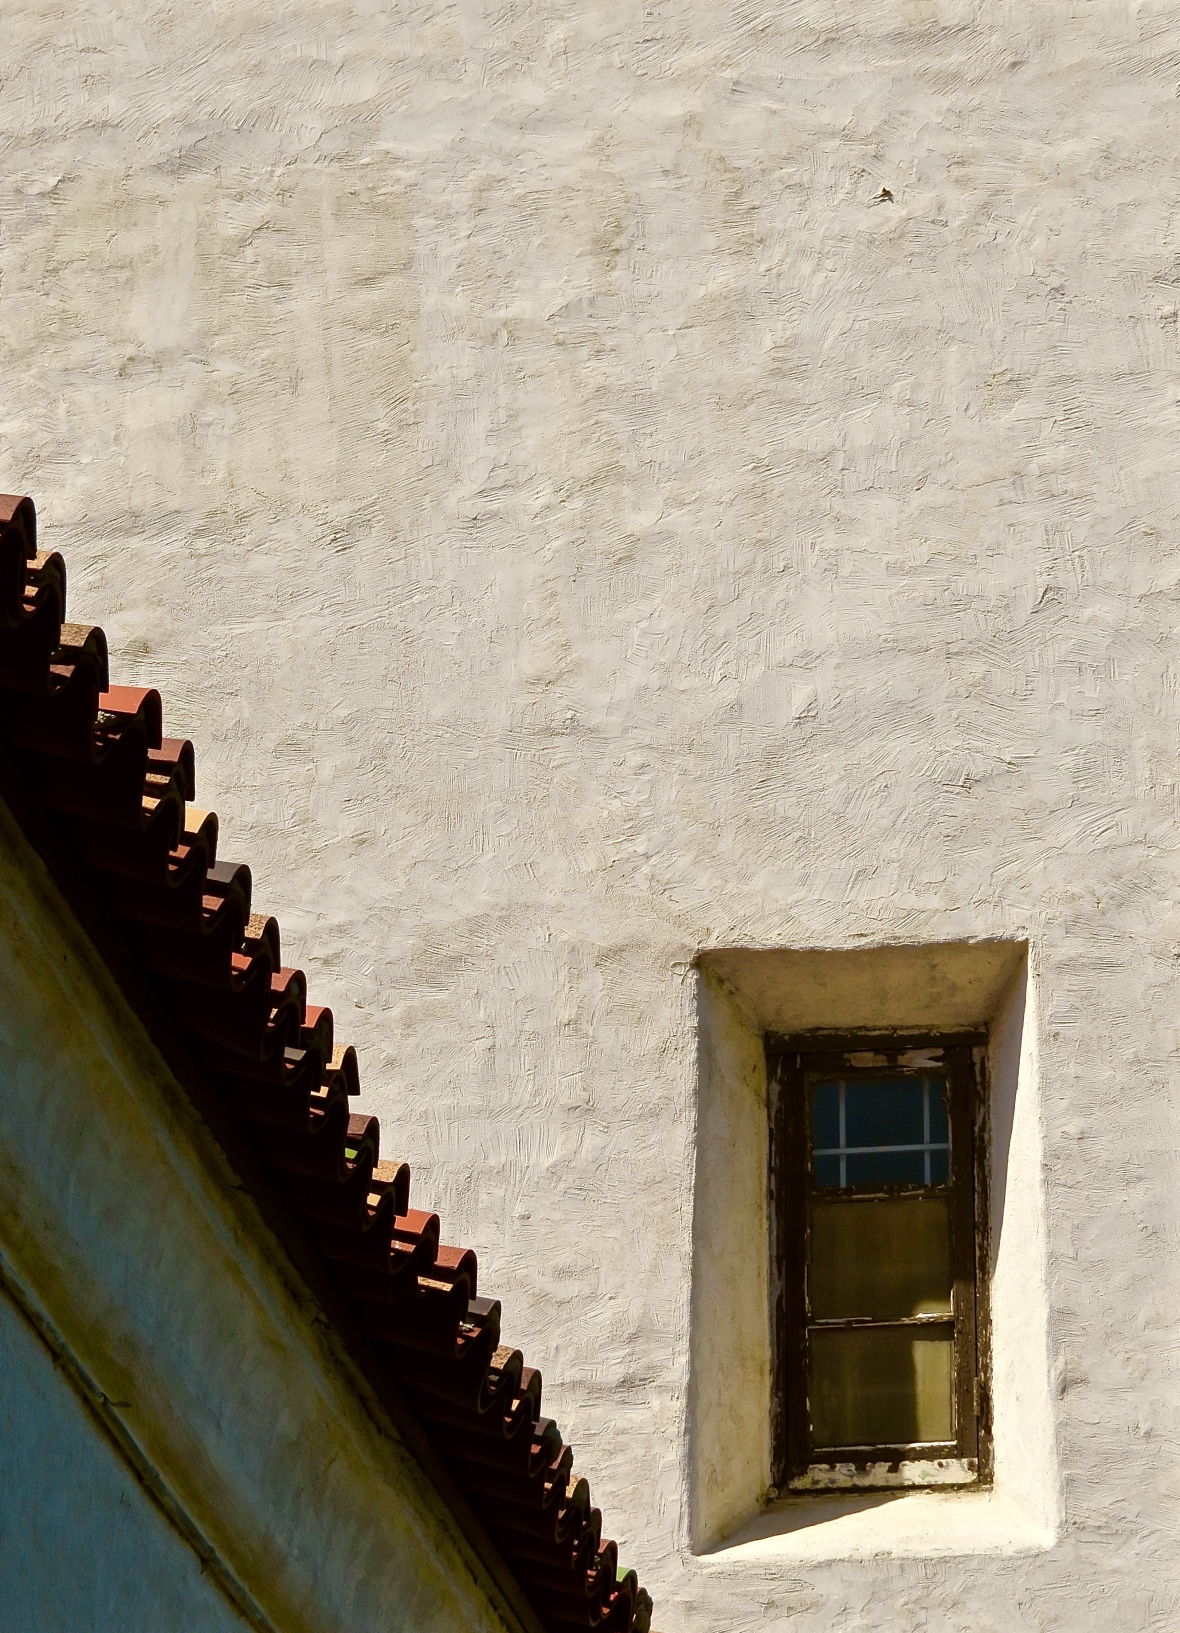 Presidio Serra Roofline Window Solo